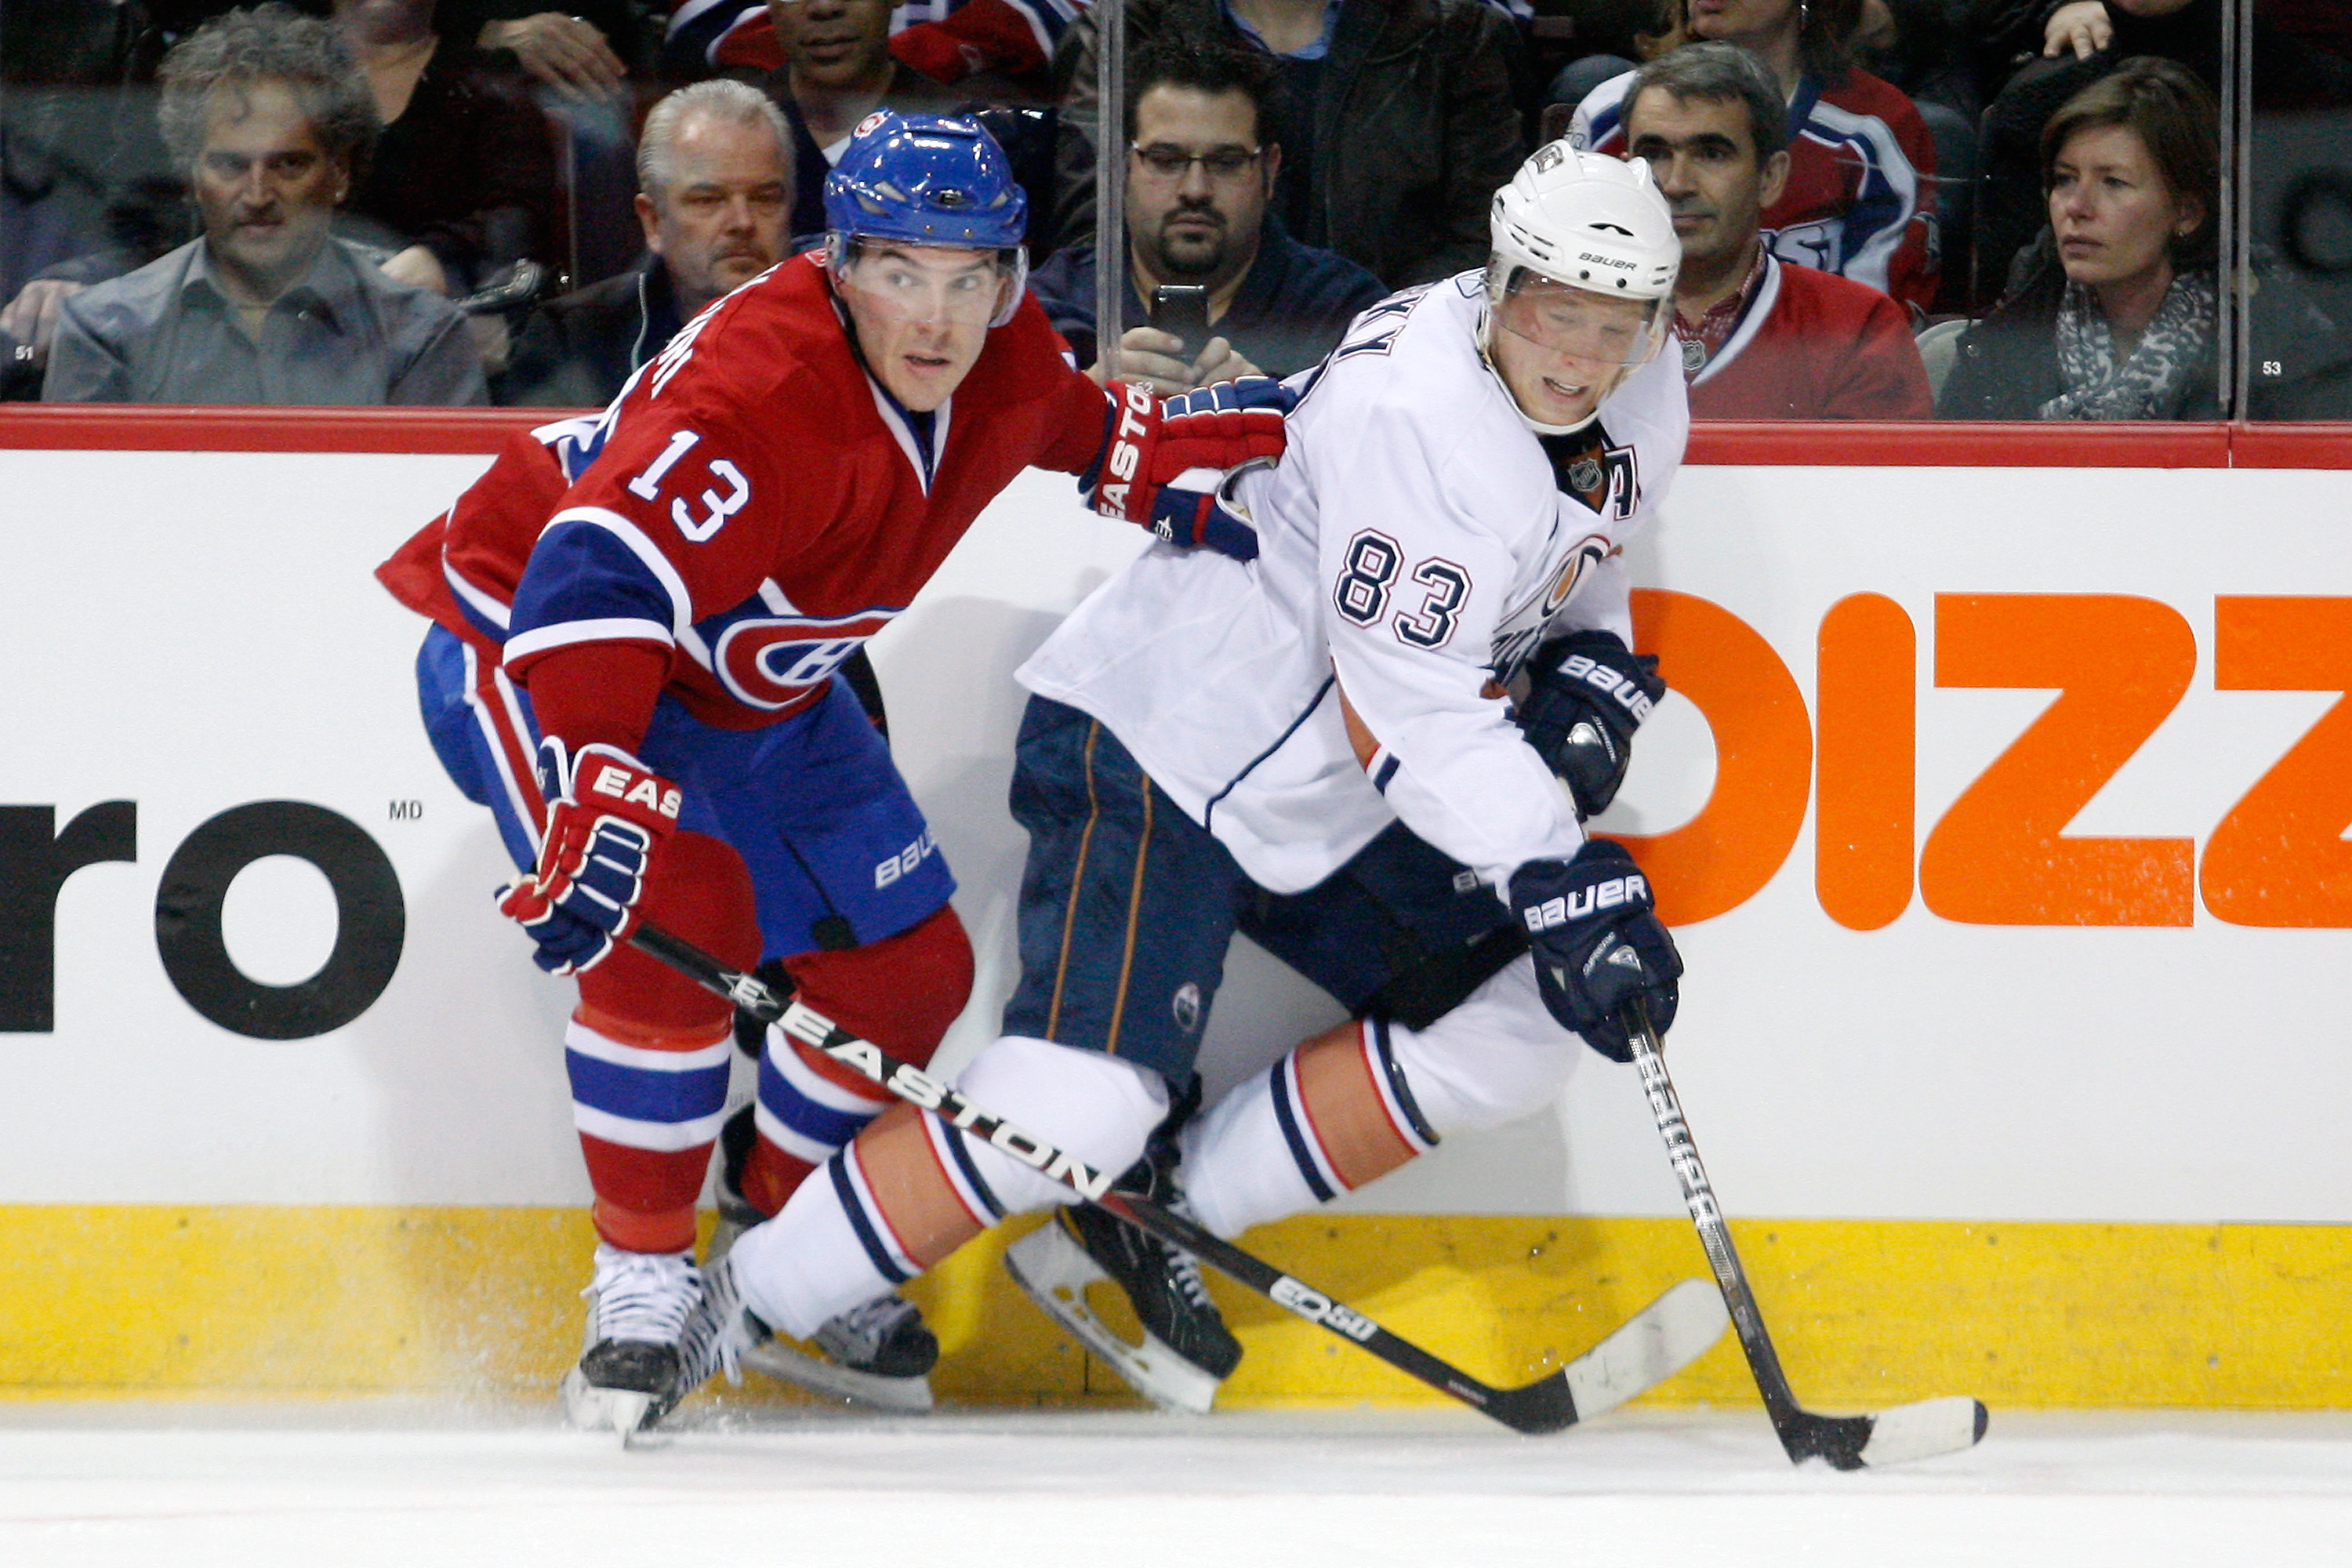 MONTREAL, CANADA - DECEMBER 01:  Mike Cammalleri #13 of the Montreal Canadiens and Ales Hemsky #83 of the Edmonton Oilers battle for position during the NHL game at the Bell Centre on December 1, 2010 in Montreal, Quebec, Canada.  The Oilers defeated the